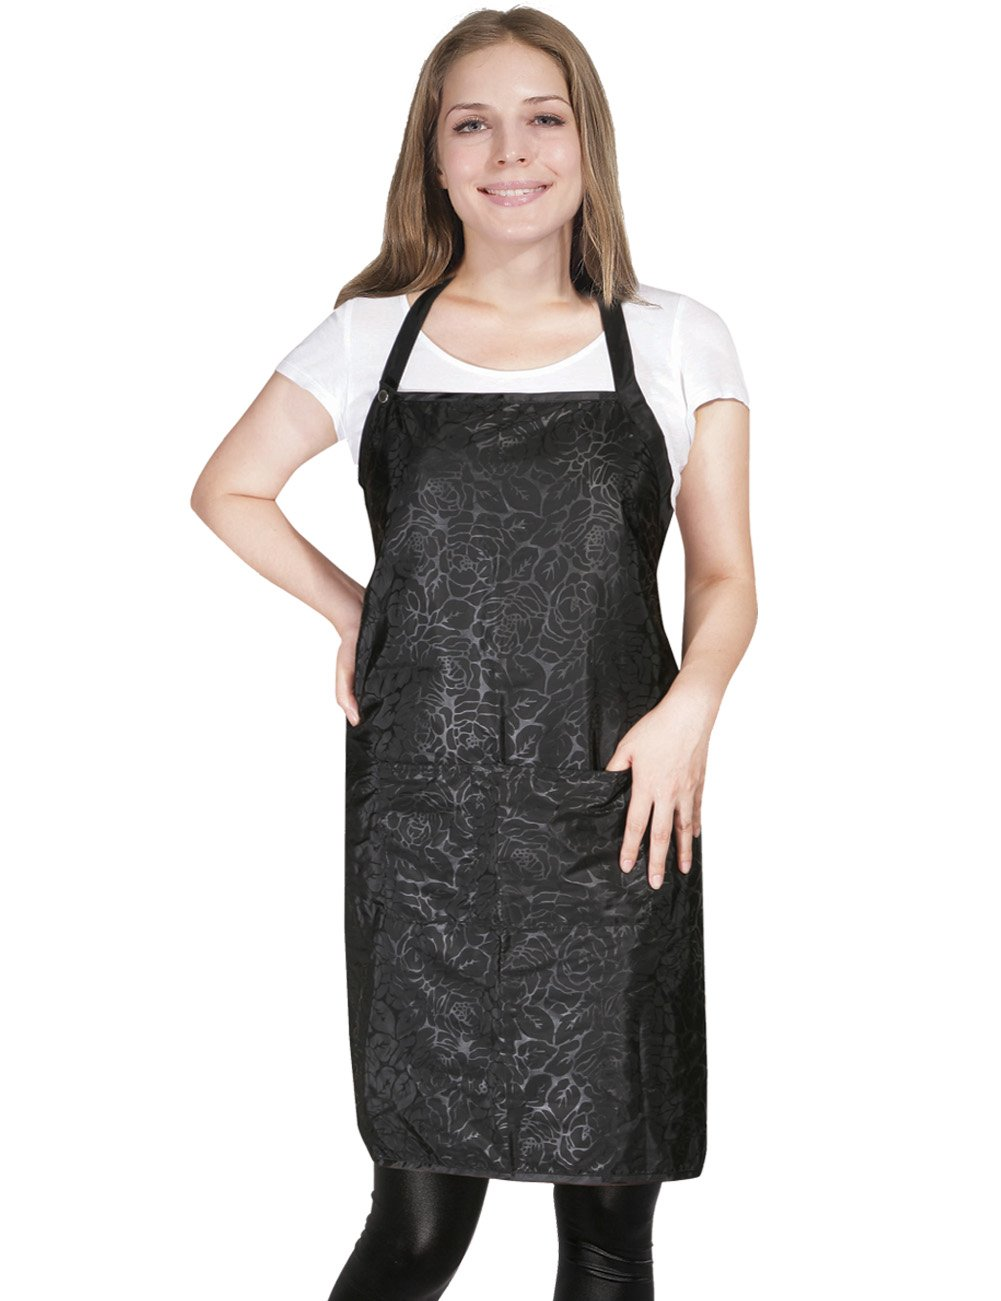 XMW Printing adjustable Water Repellent Salon Apron with Pocket Black02